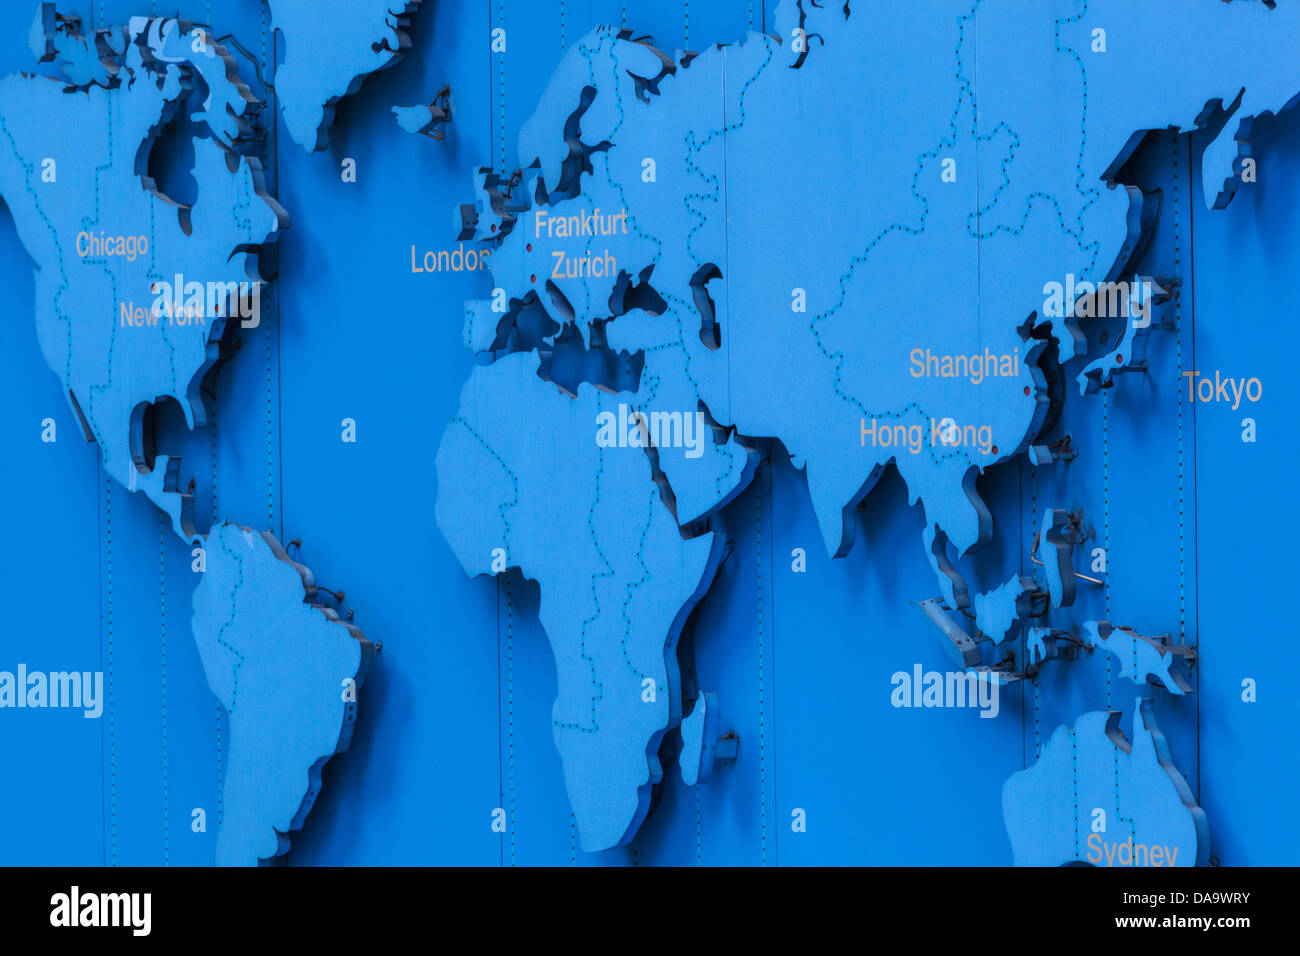 China hong kong map stock photos china hong kong map stock images china hong kong hongkong world map showing main financial centres stock image gumiabroncs Images